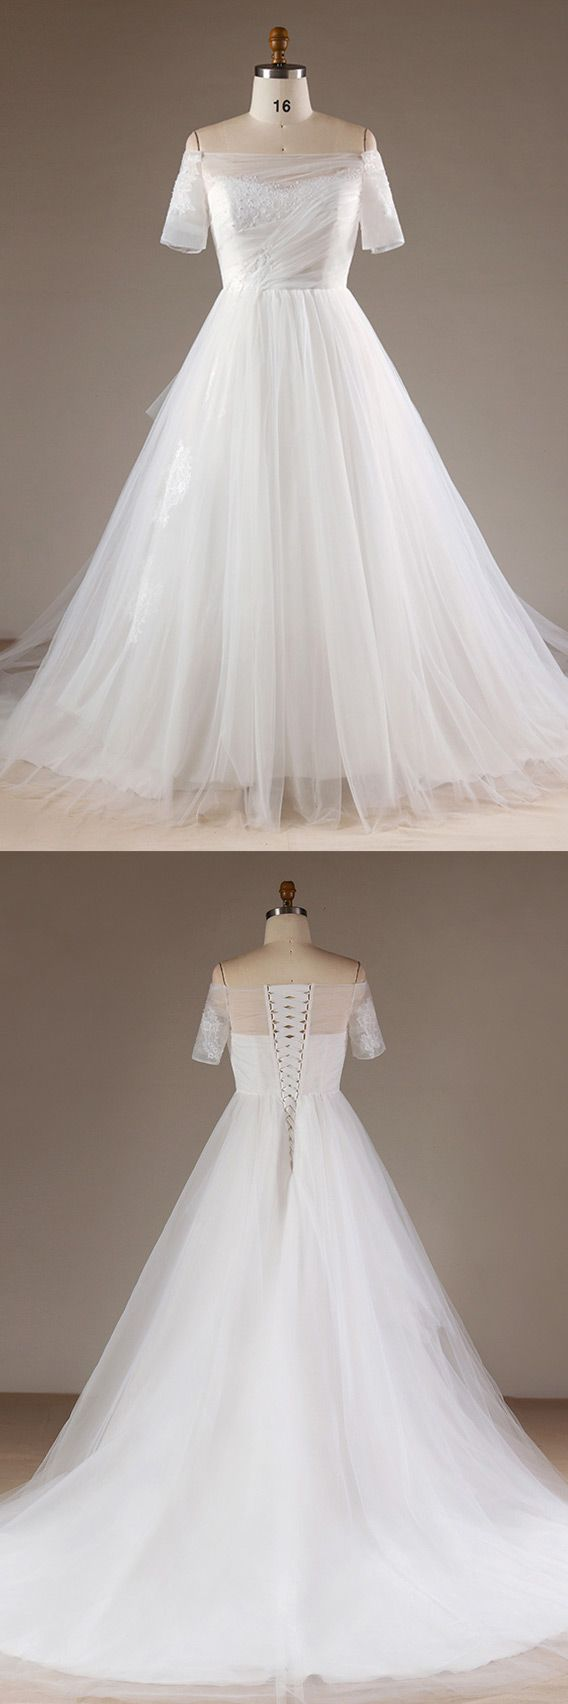 Plus size tulle wedding dress  Only  Plus Size Wedding Dresses Simple Plus Size Off